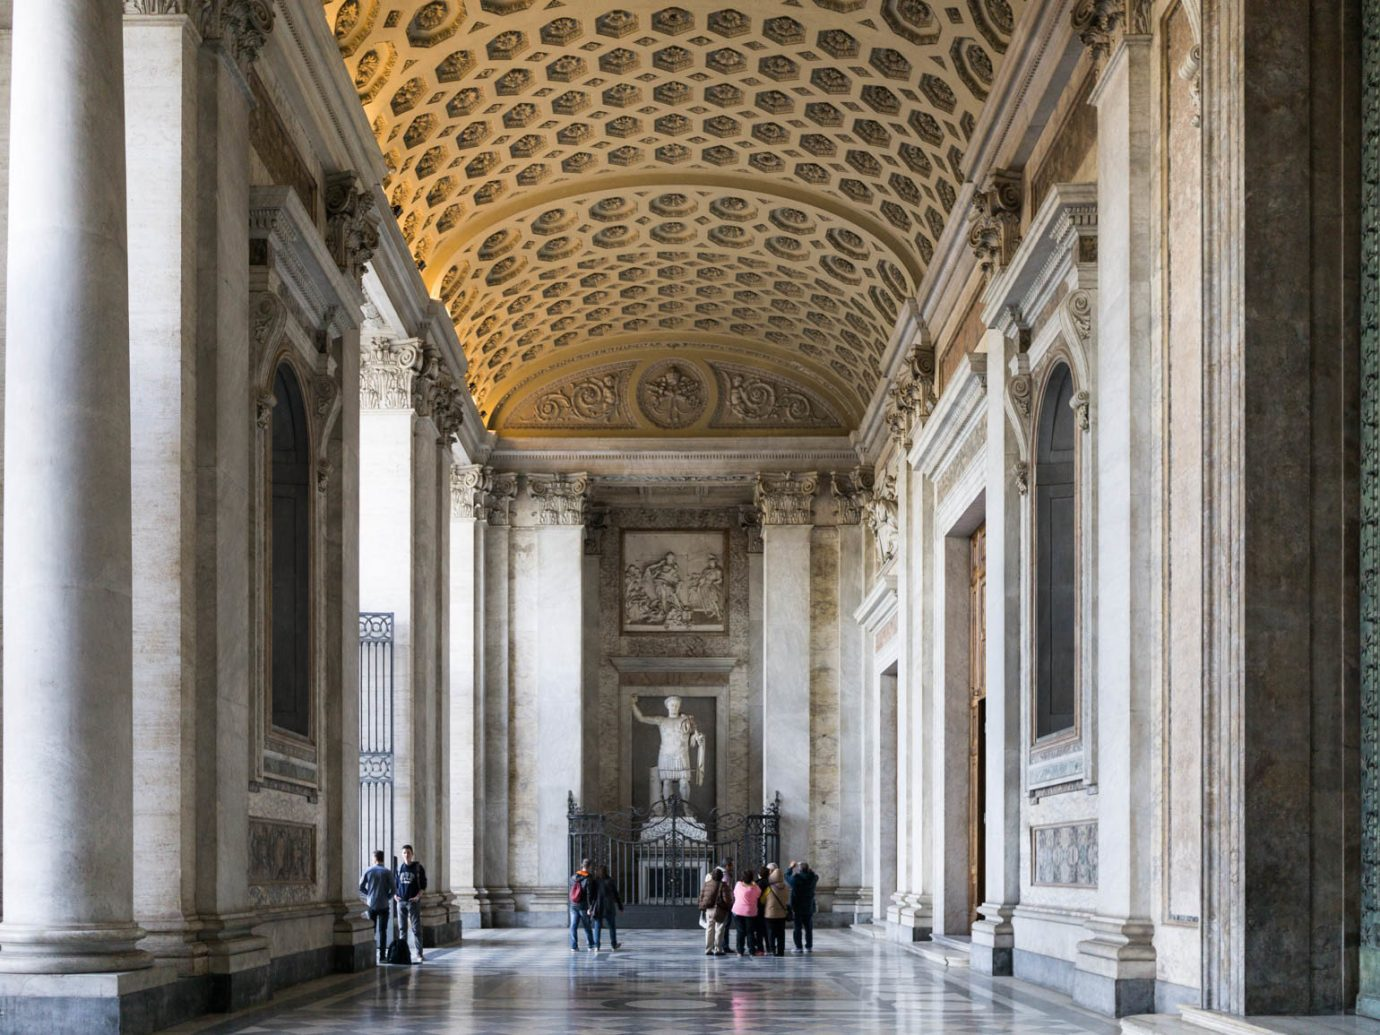 Trip Ideas building outdoor column classical architecture structure tourist attraction ancient roman architecture basilica arch arcade symmetry ancient rome facade window place of worship religious institute historic site colonnade stone walkway